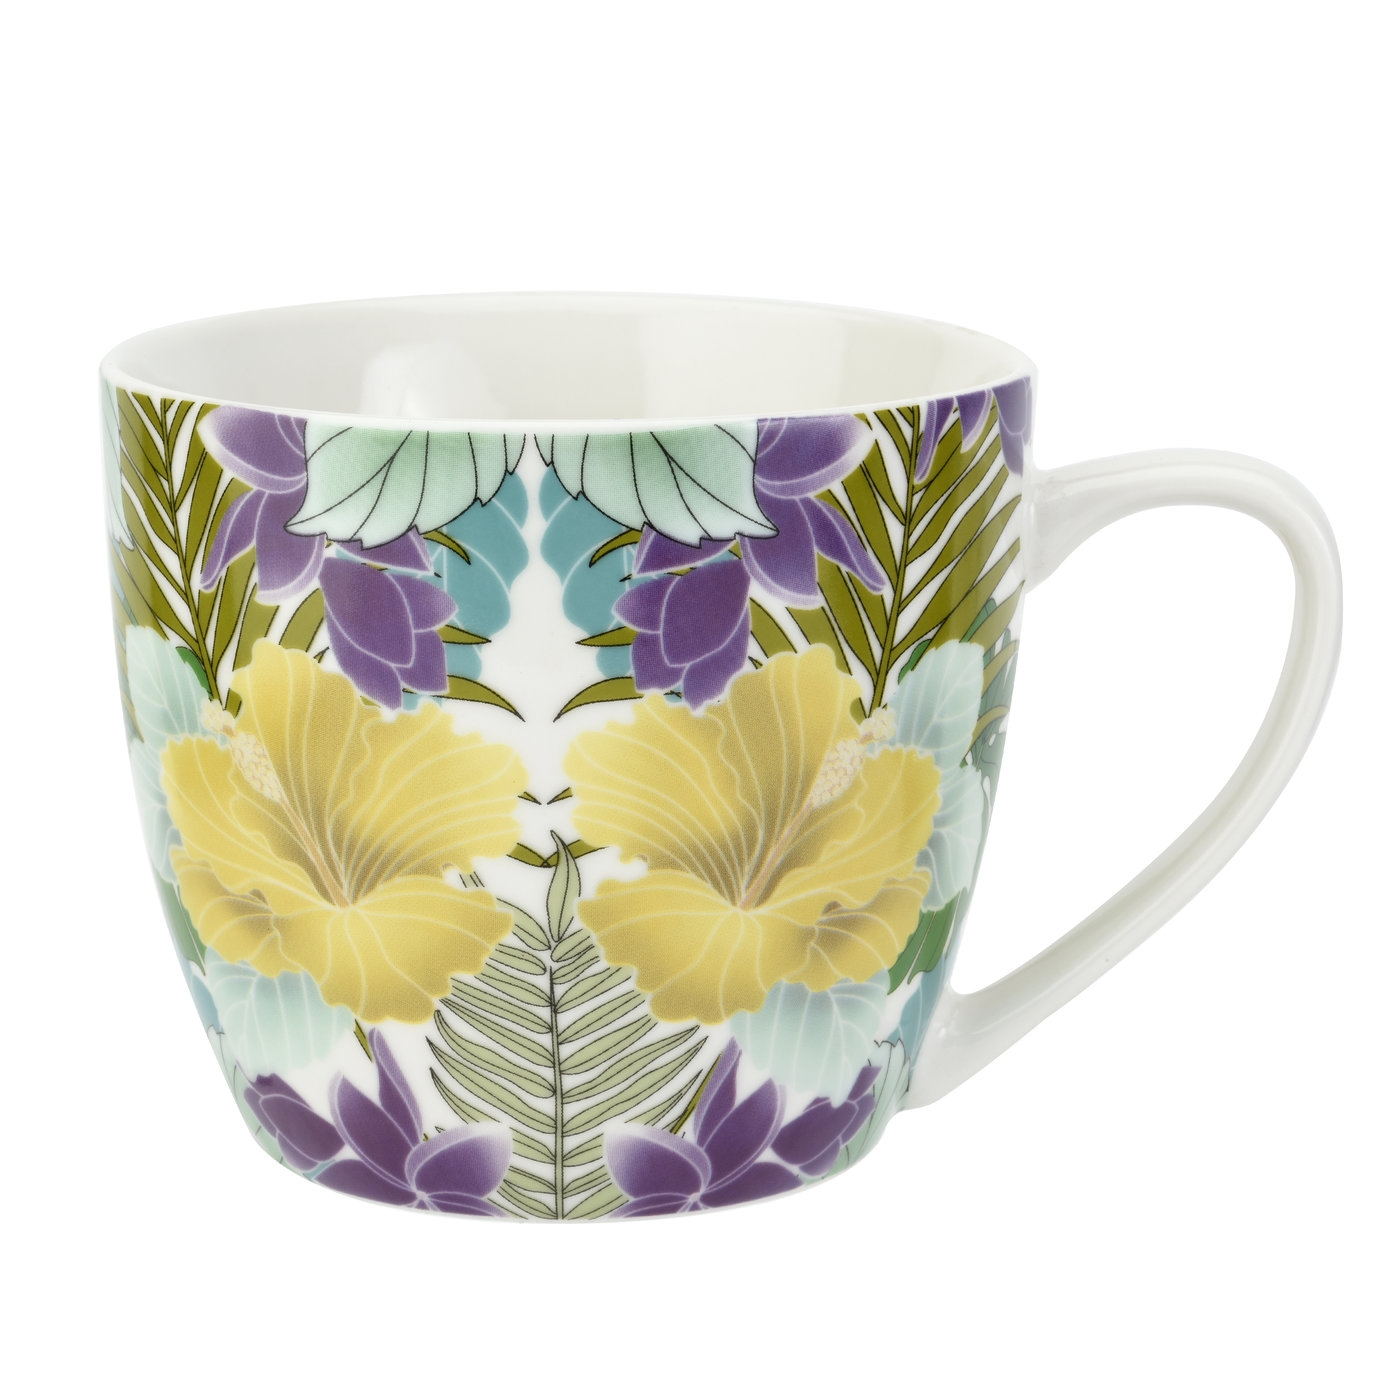 Pimpernel Kaleidoscope Jungle 16oz Mug image number 0